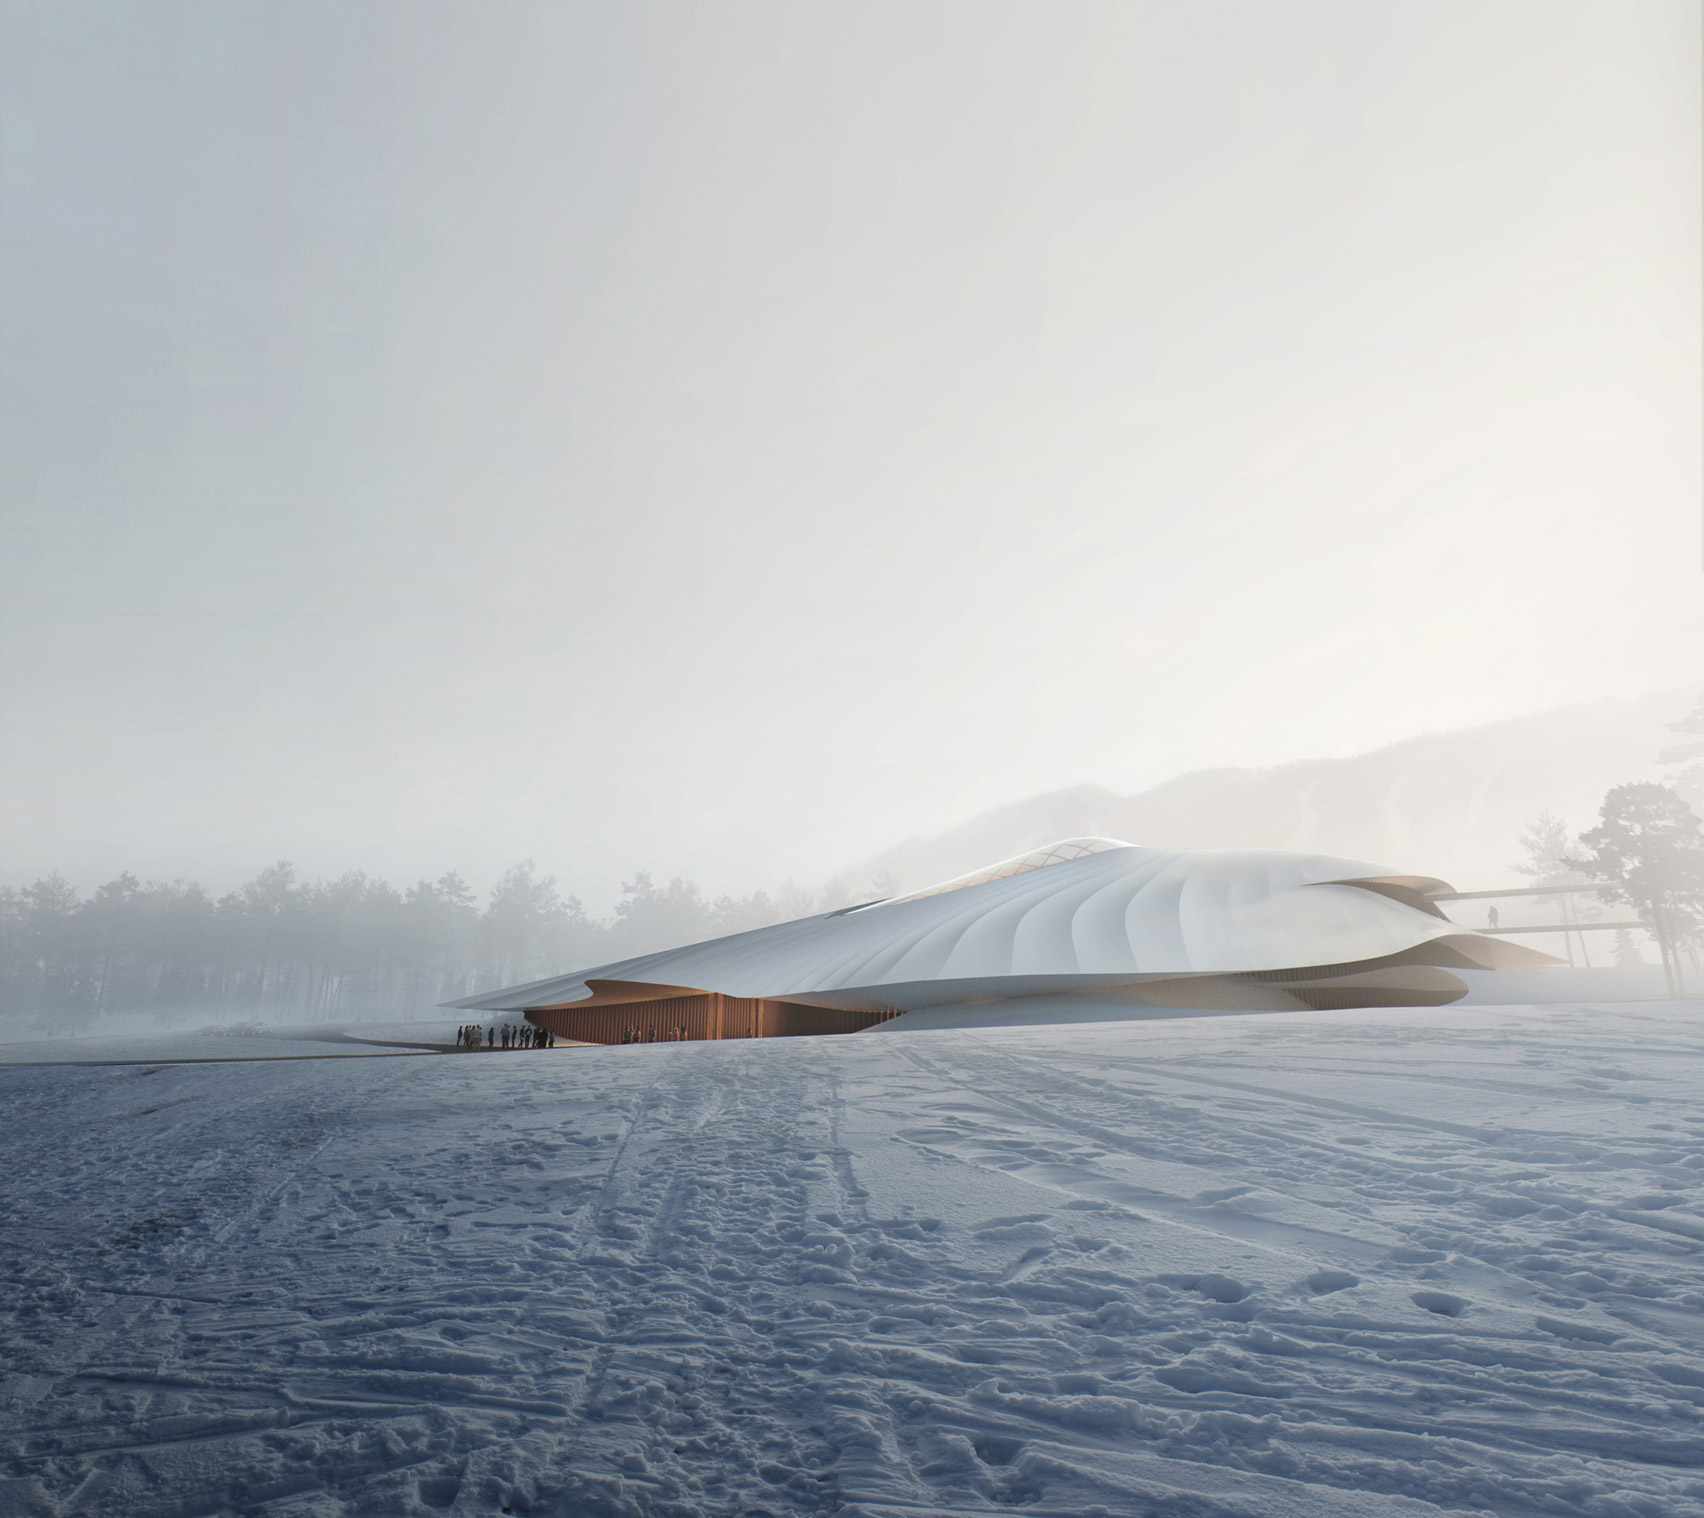 MAD reveals designs for Yabuli Conference Centre in Chinese mountains